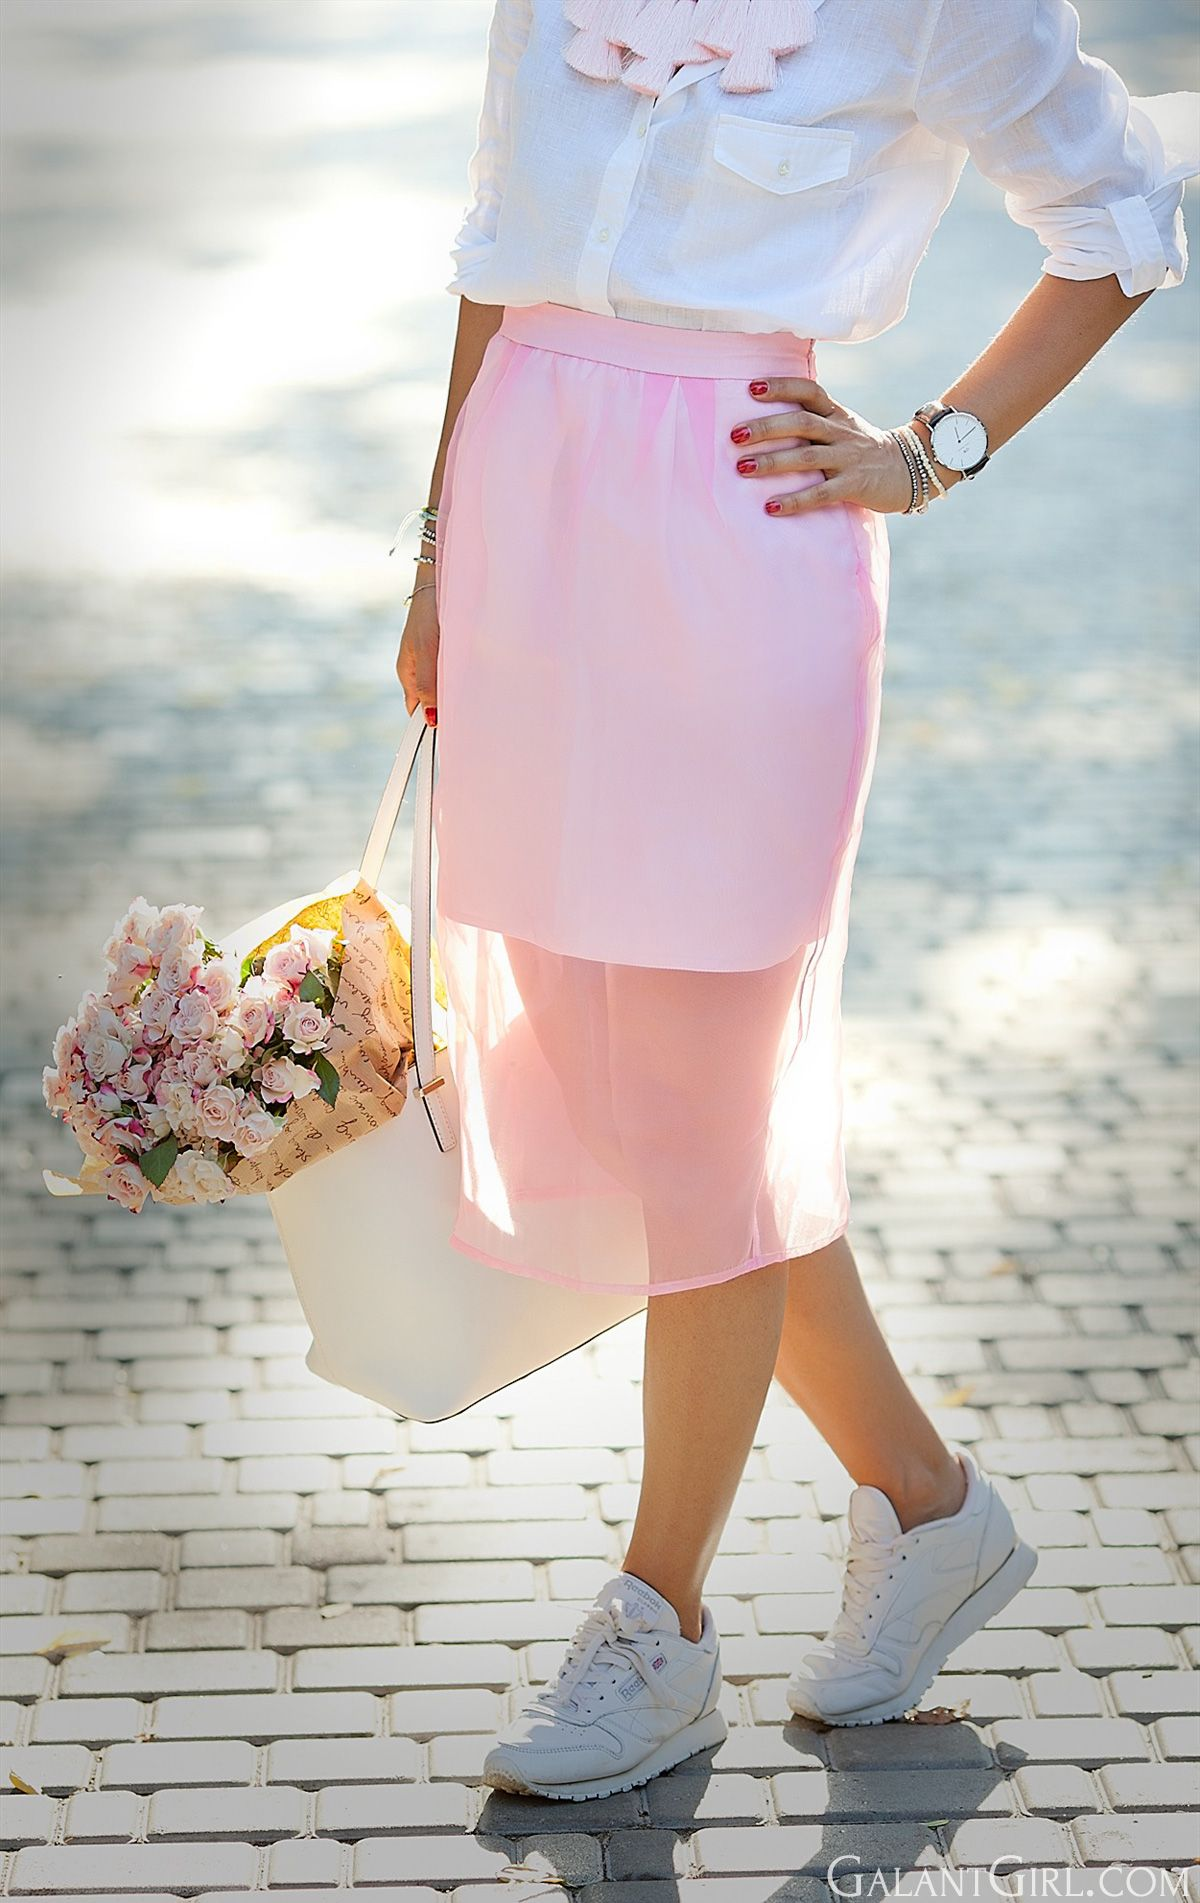 847eb044bf54 pink-outfit-with-reebok-classic-sneakers-street-style-blogger-galantgirl